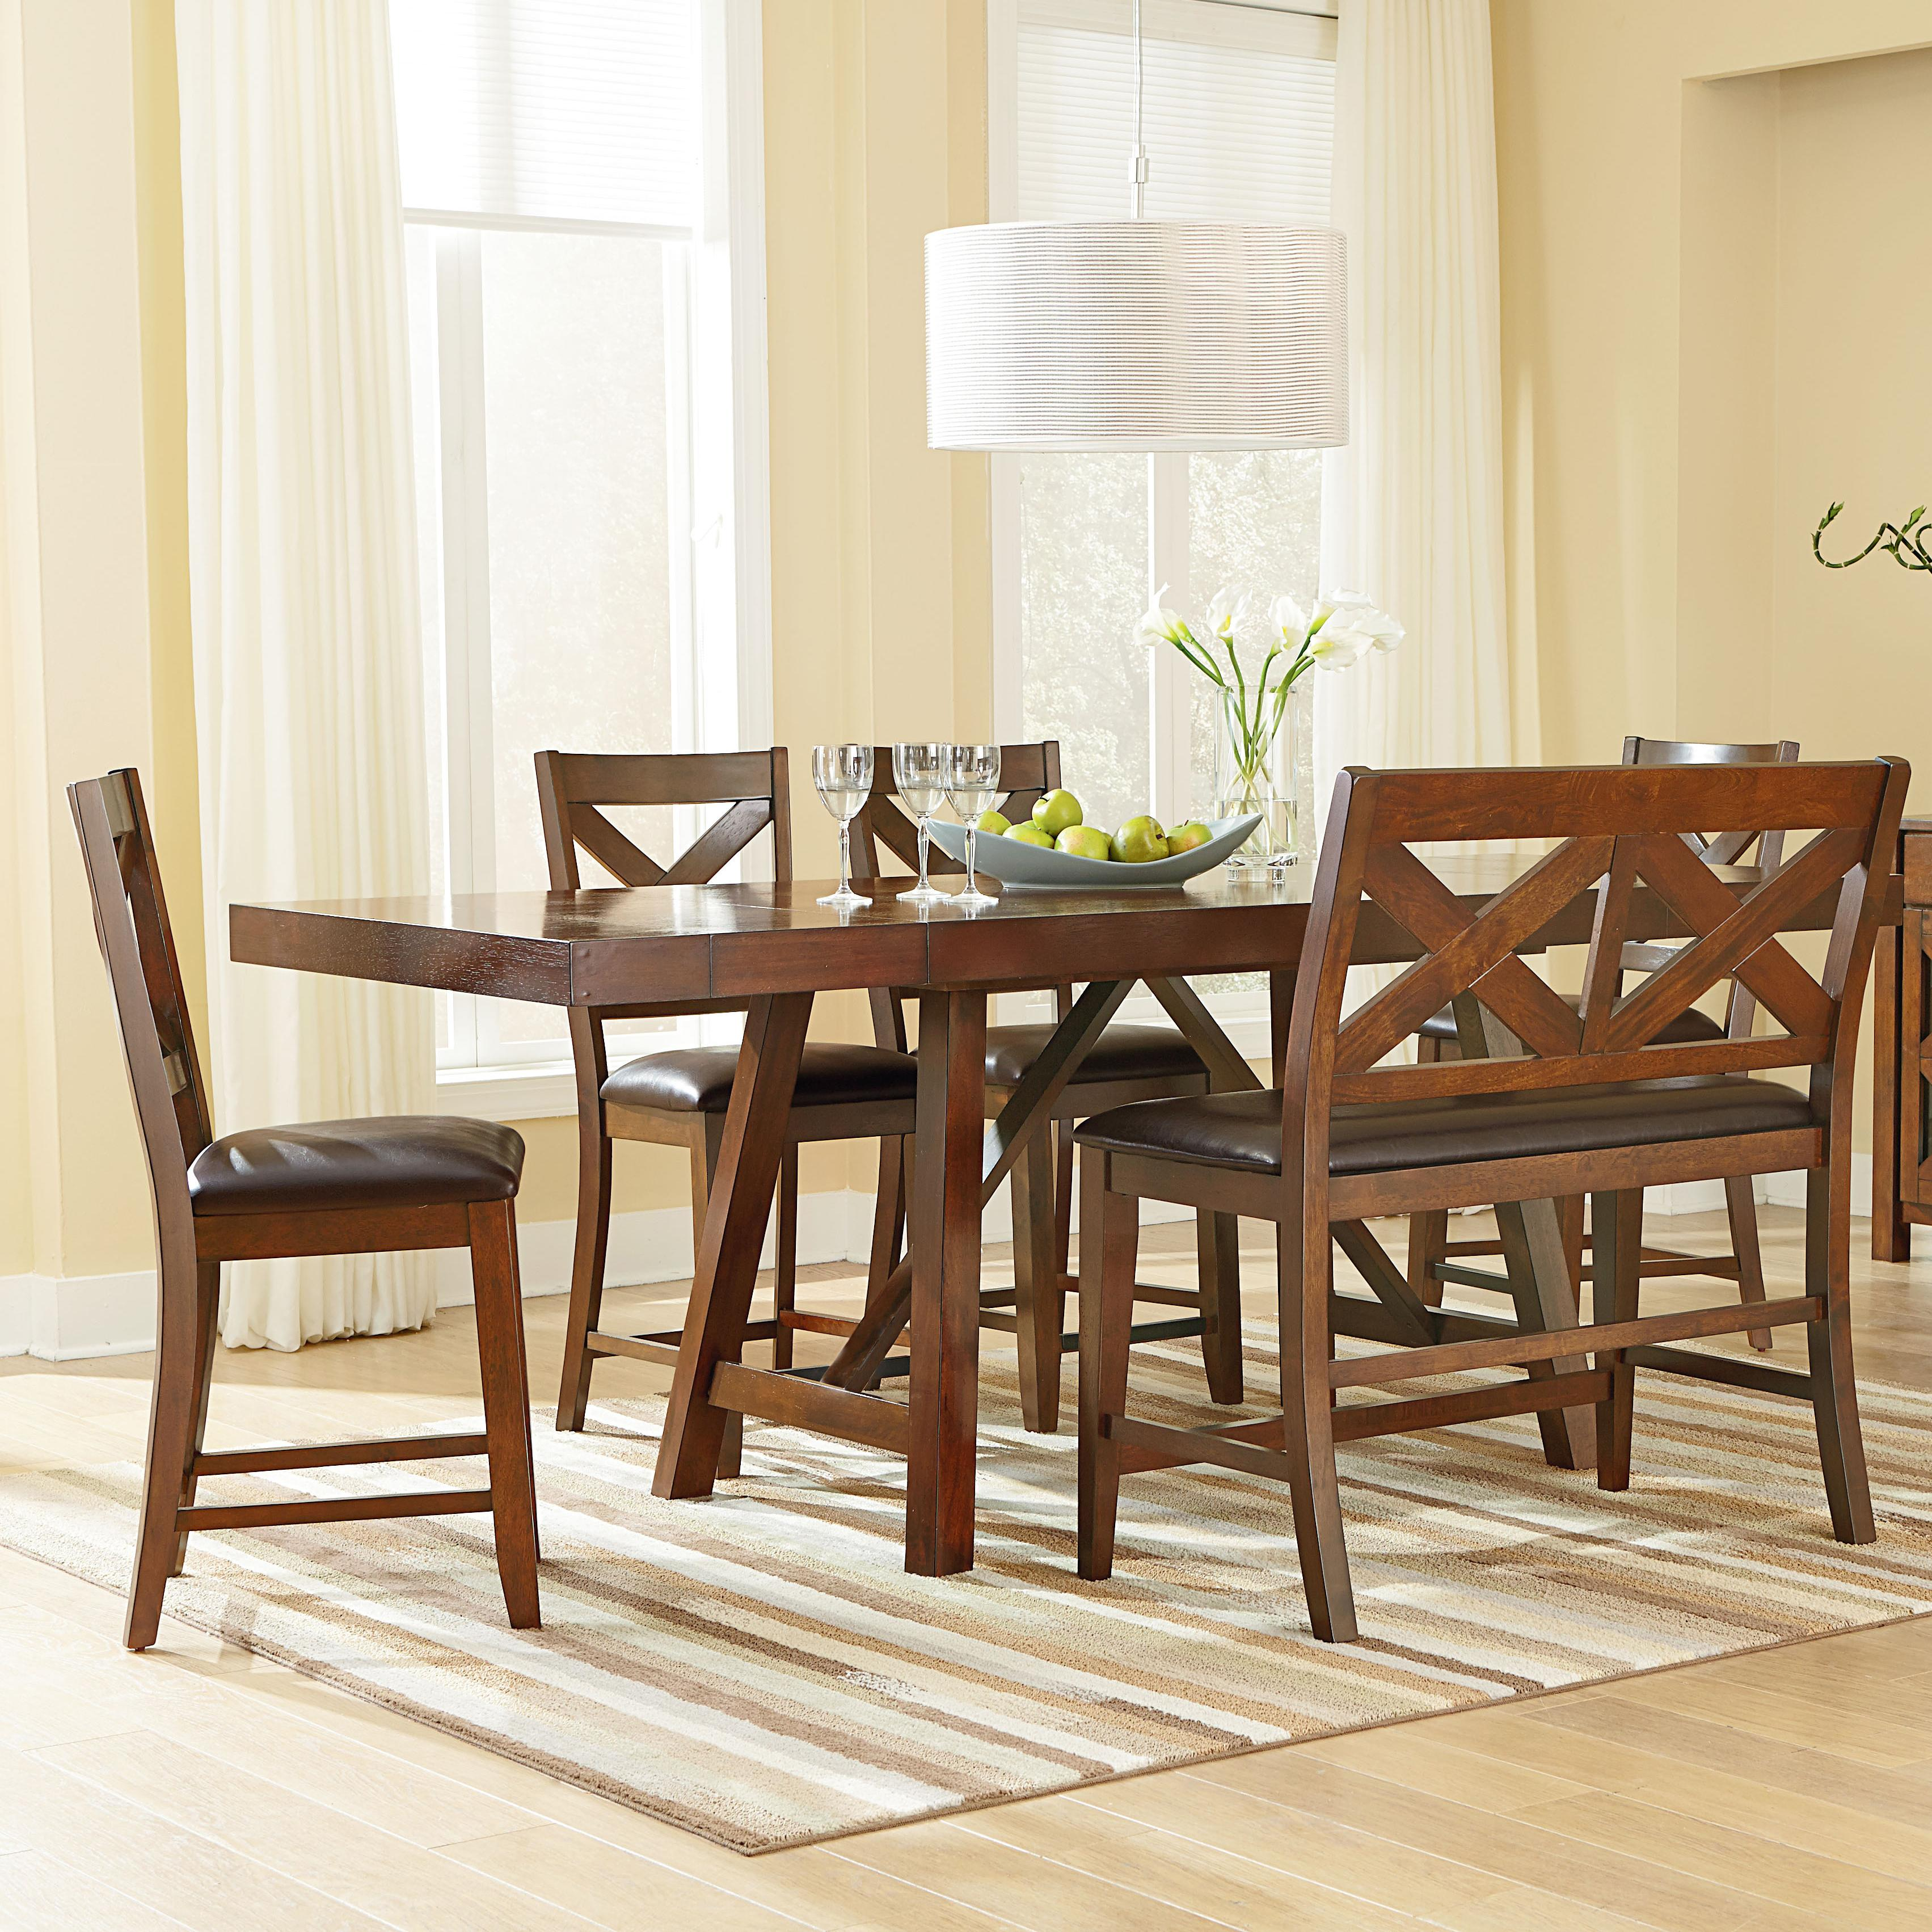 Good 6 Piece Counter Height Table Set With Bench And Bar Stools